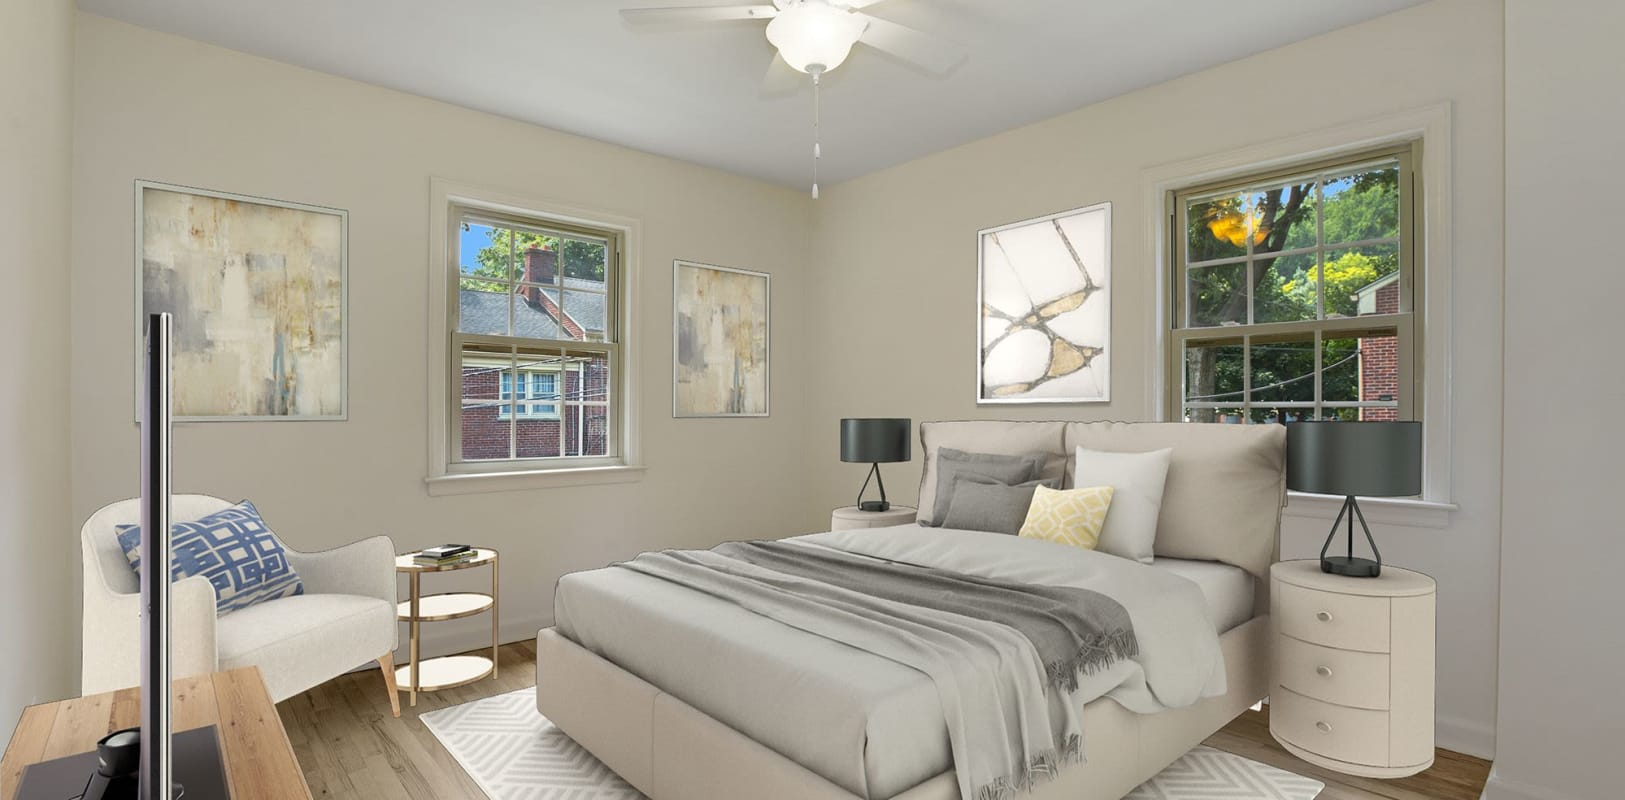 Well decorated bedroom at Northfield Townhouses in West Orange, New Jersey